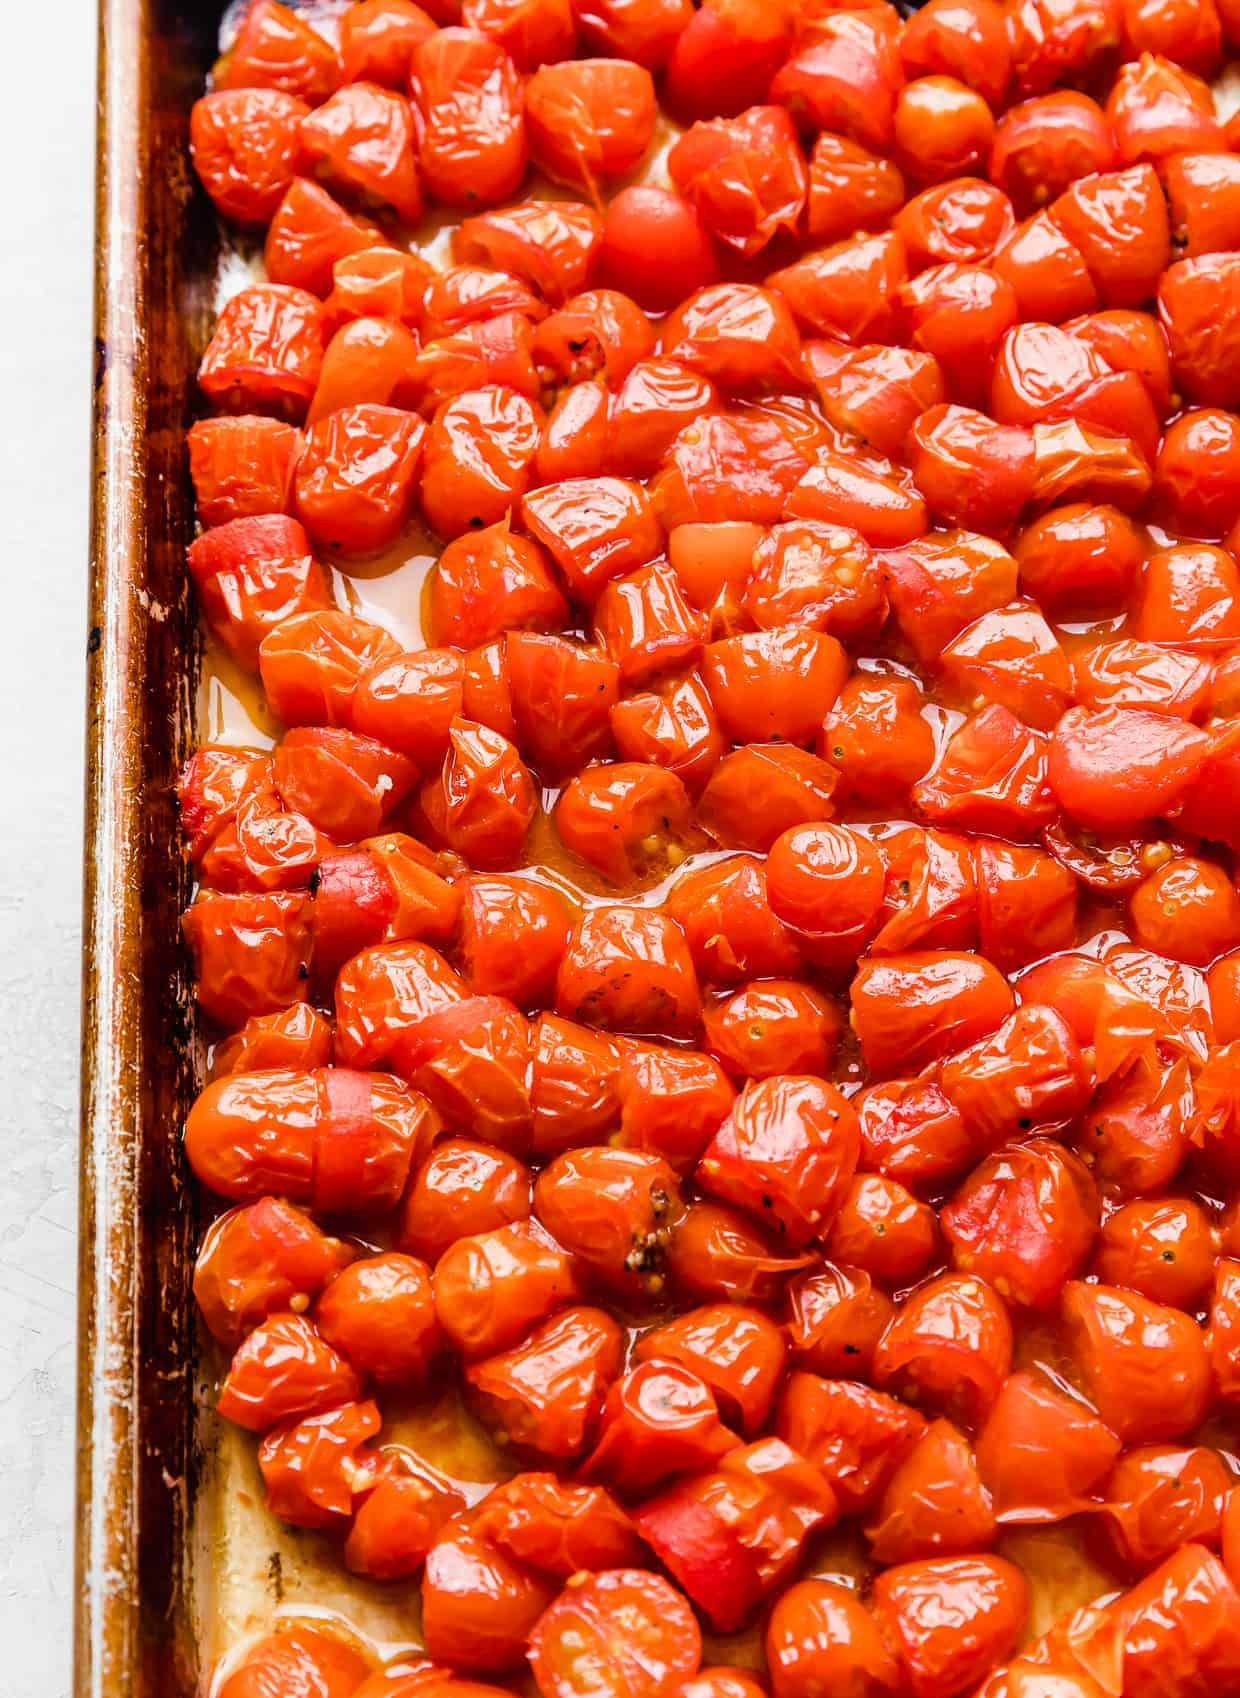 Roasted small red tomatoes cut in half, on a baking sheet.